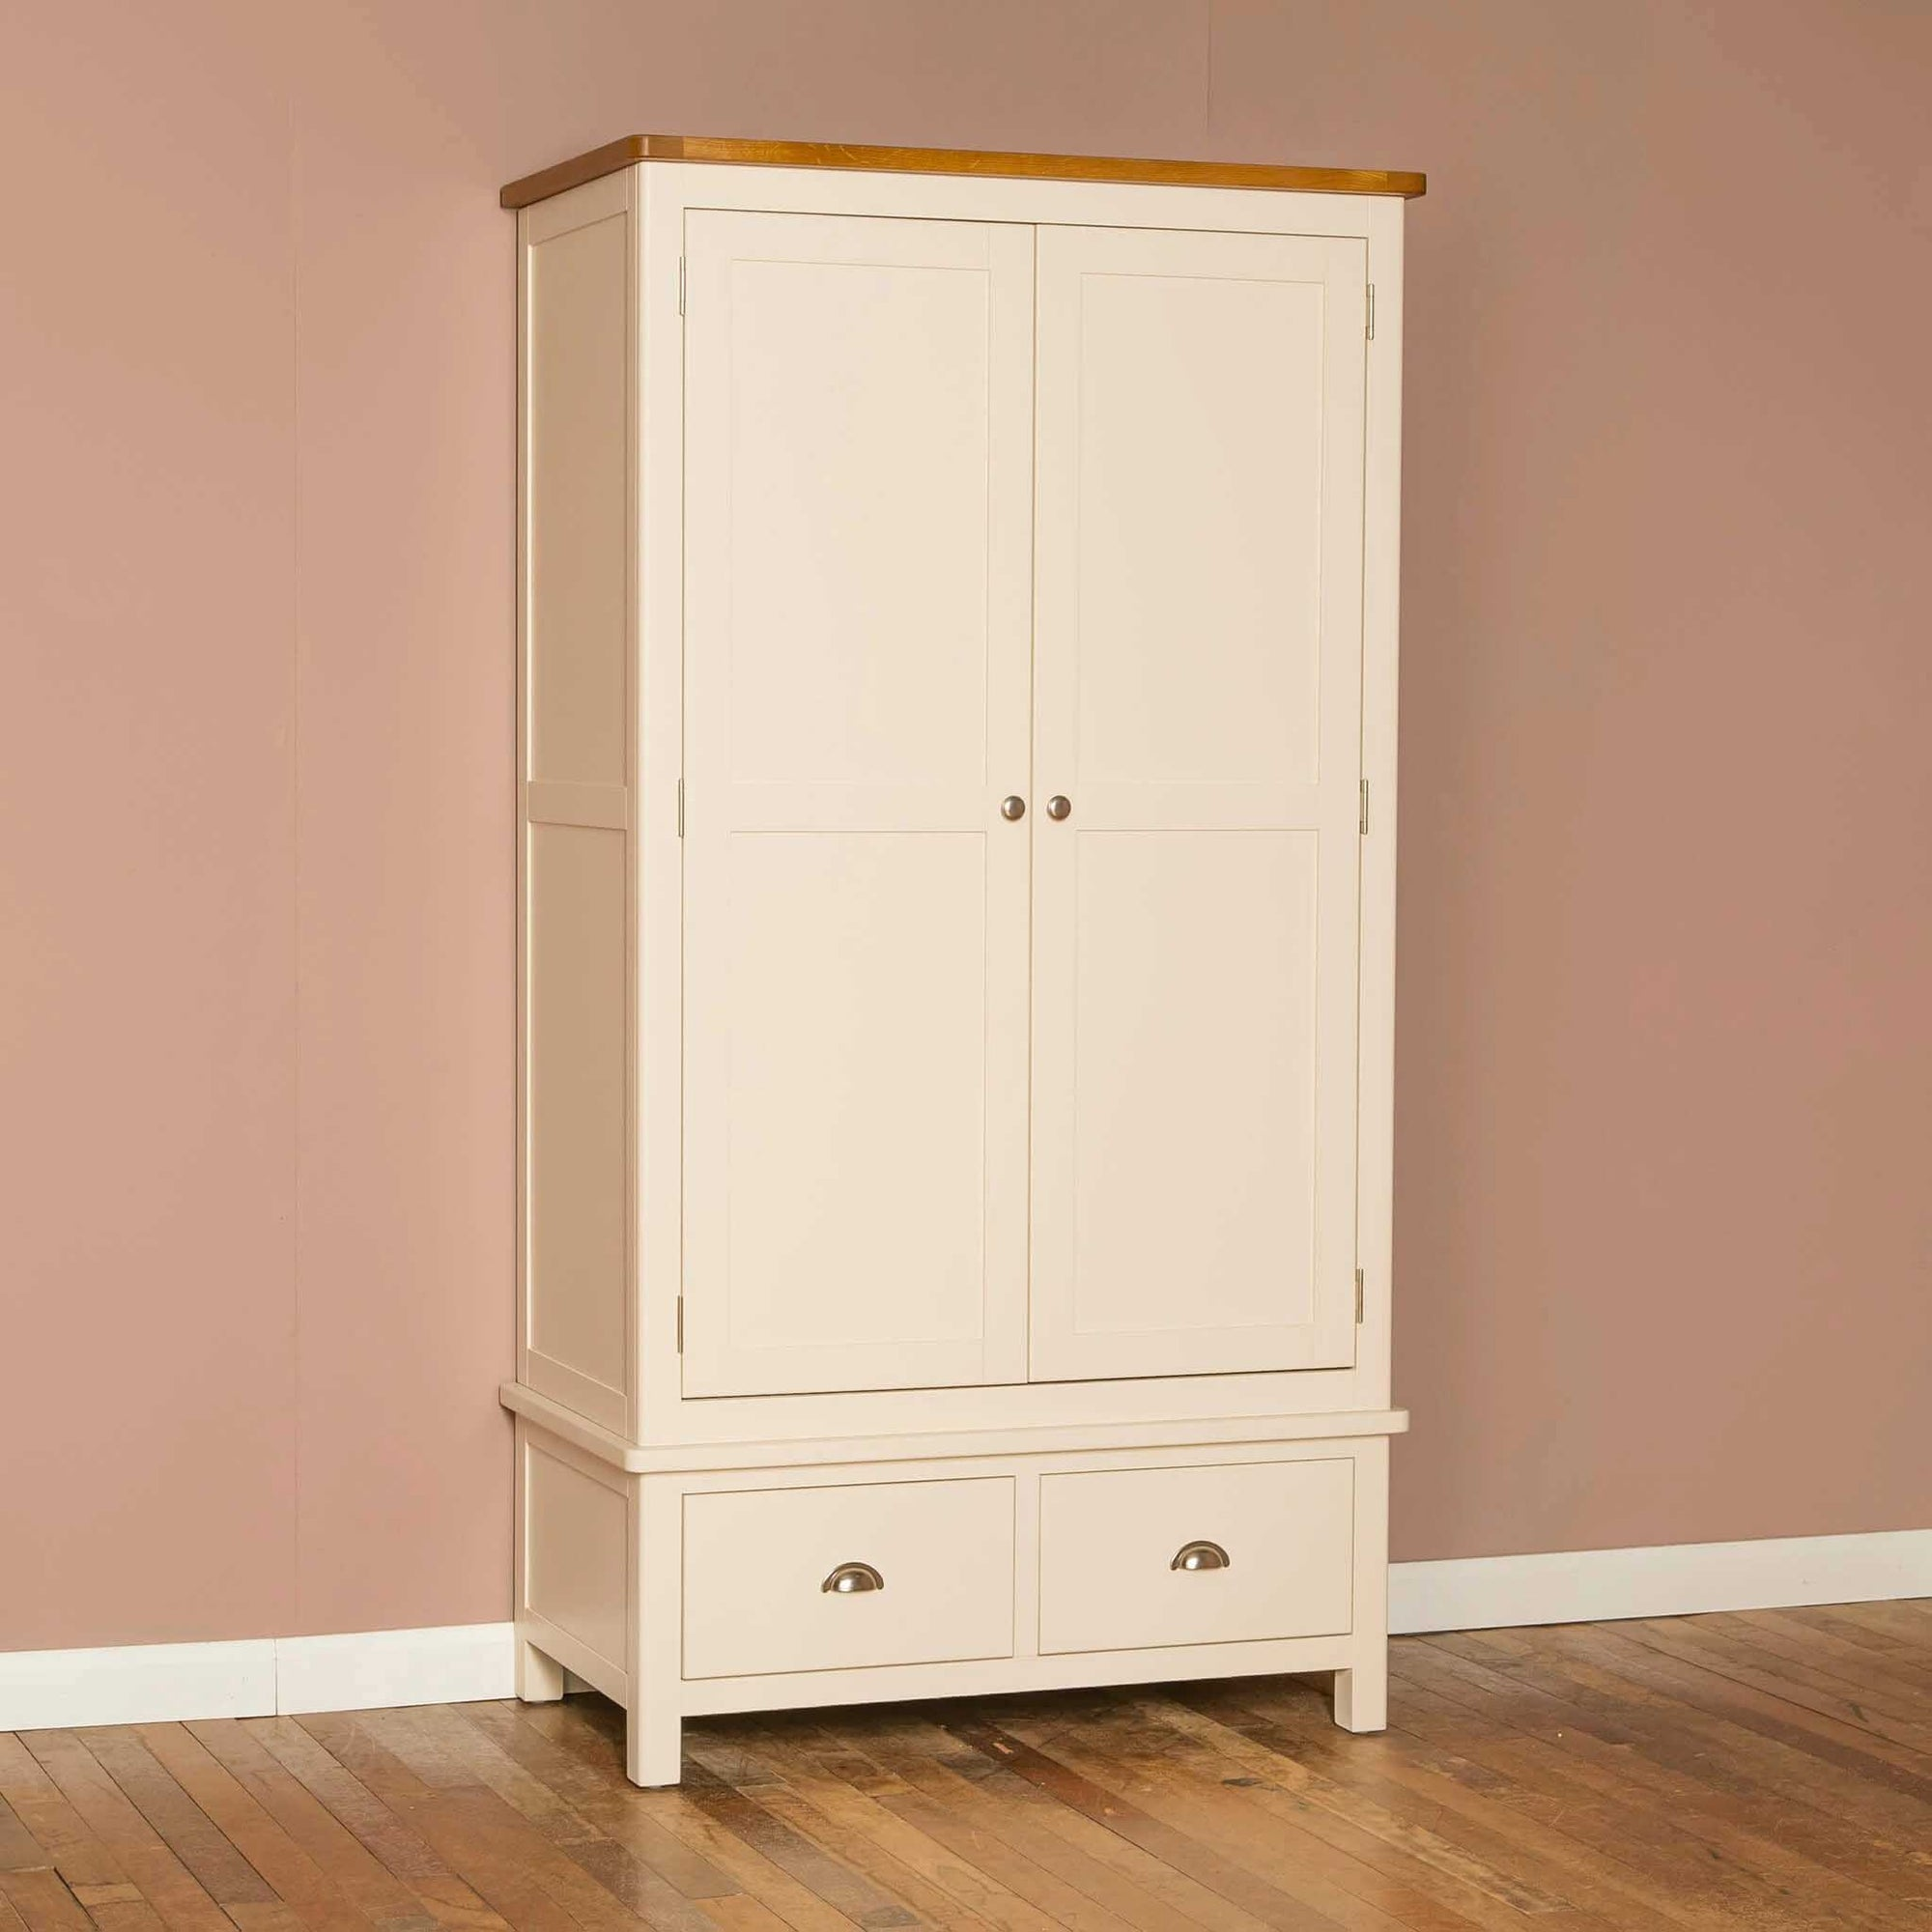 The Padstow Cream Wooden Double Wardrobe with Oak Top From Roseland Furniture